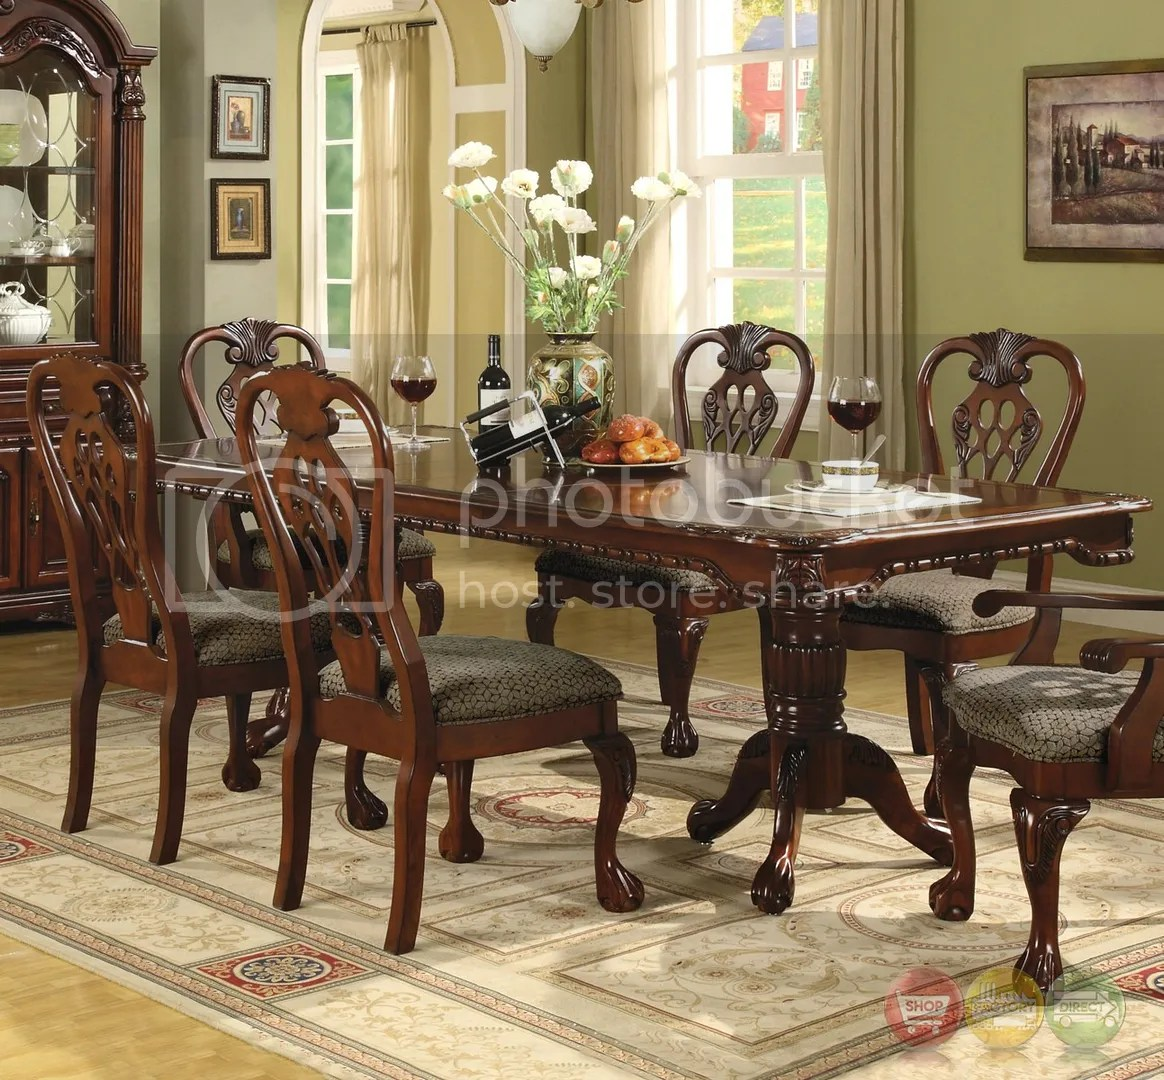 Dining Room Chair Sets Details About Brussels Formal Dining Room 7 Piece Furniture Set Traditional Dark Cherry Wood